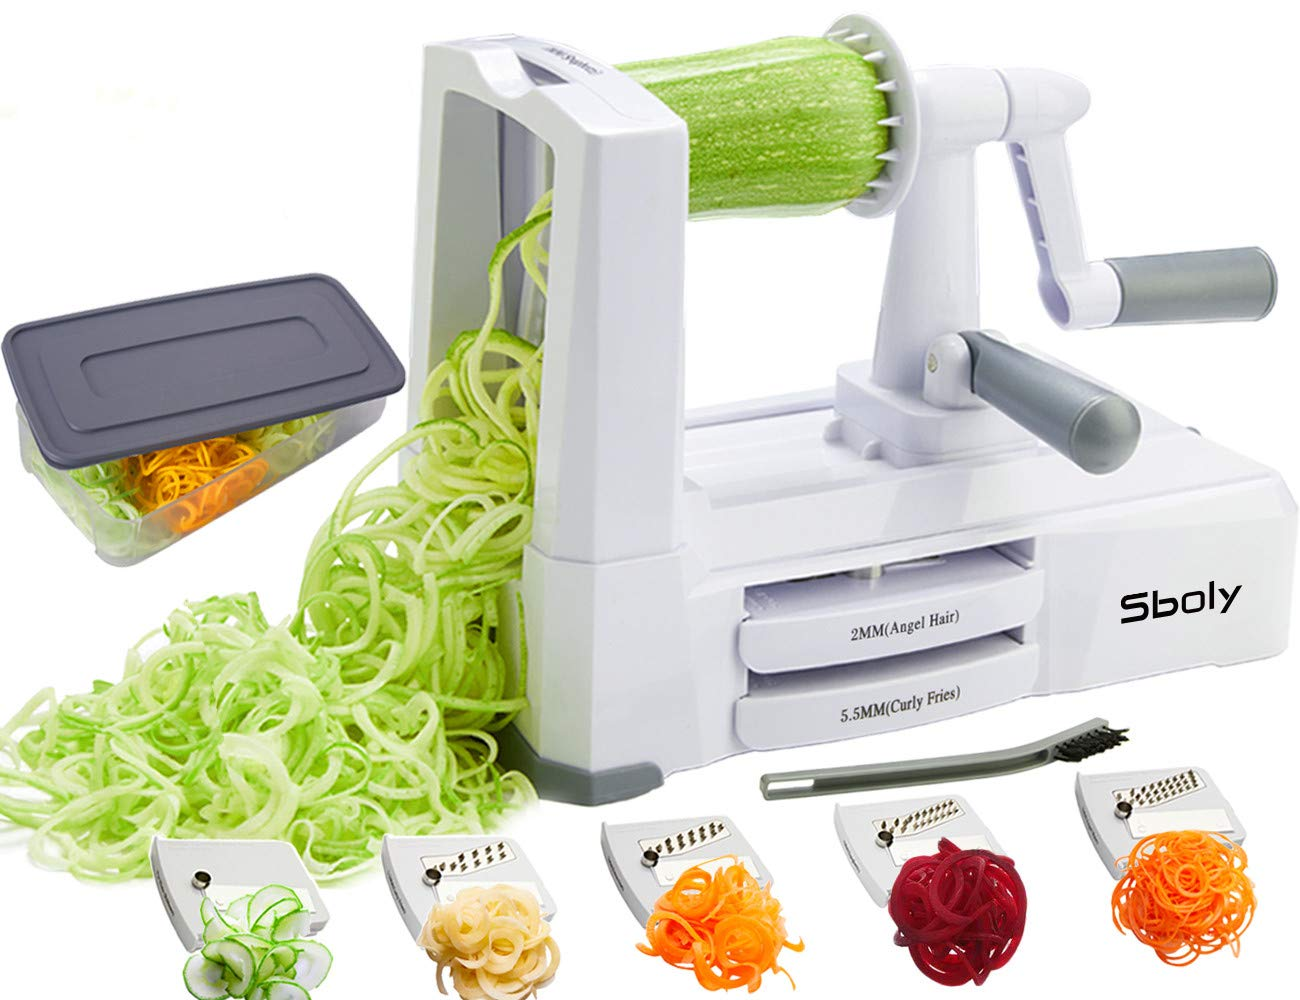 Vegetable Spiralizer Vegetable Slicer with 5 Blades, Zucchini Spaghetti Maker Zoodle Maker Veggie Pasta Maker, Strongest and Heaviest Duty Mandoline Slicer with Container, Lid, Brush by Sboly